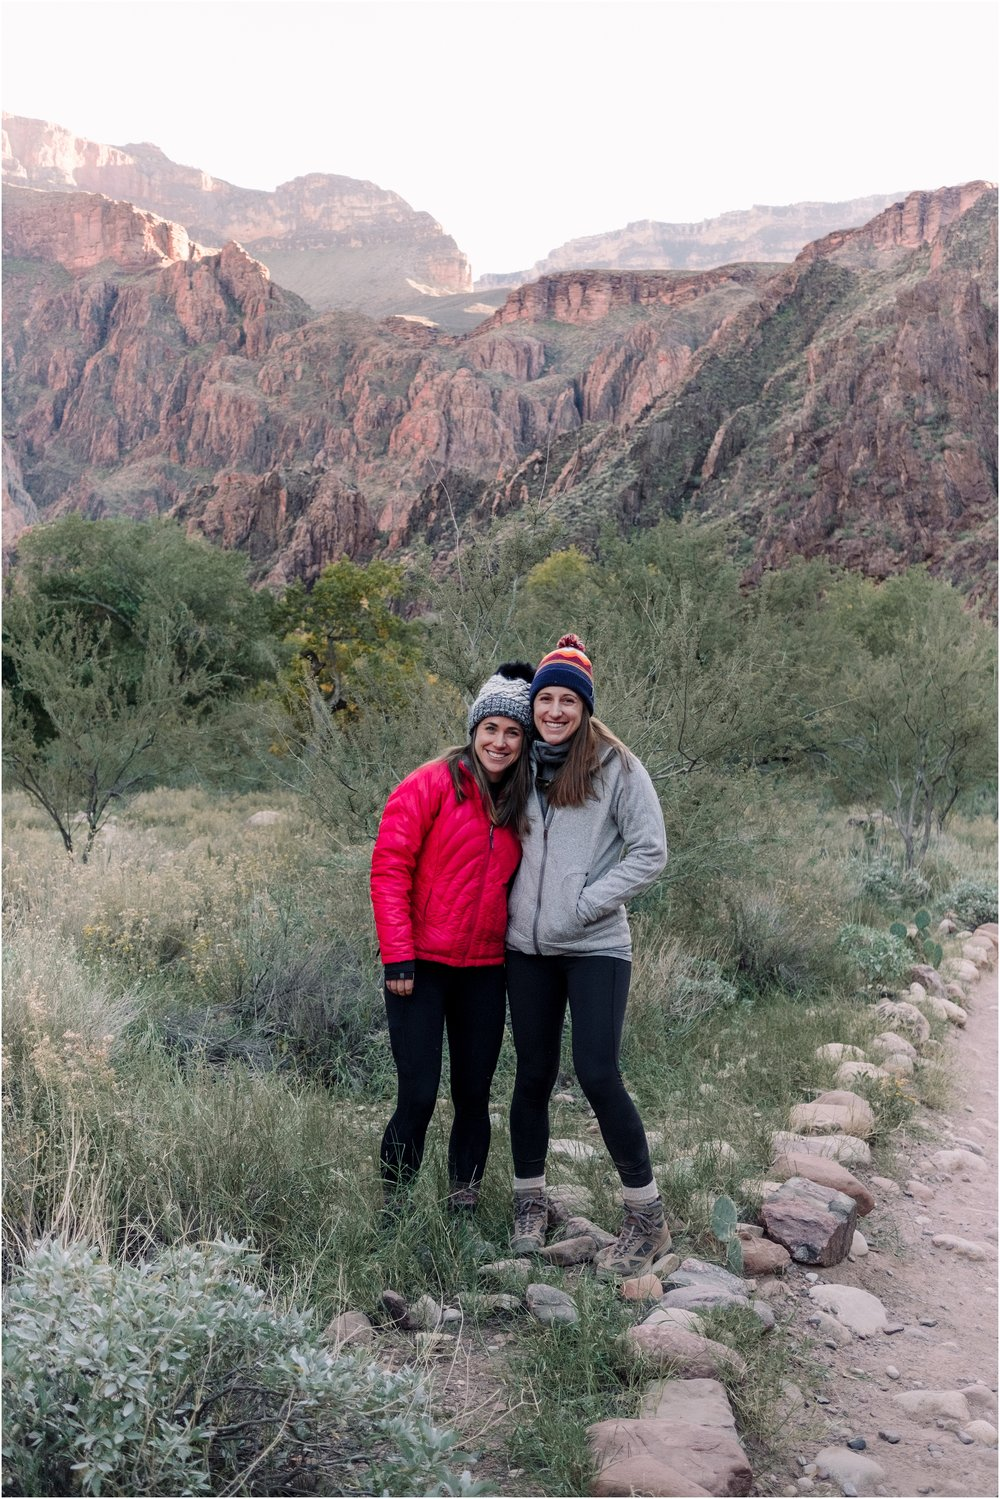 hannah leigh photography Grand Canyon Backpacking Trip_2483.jpg